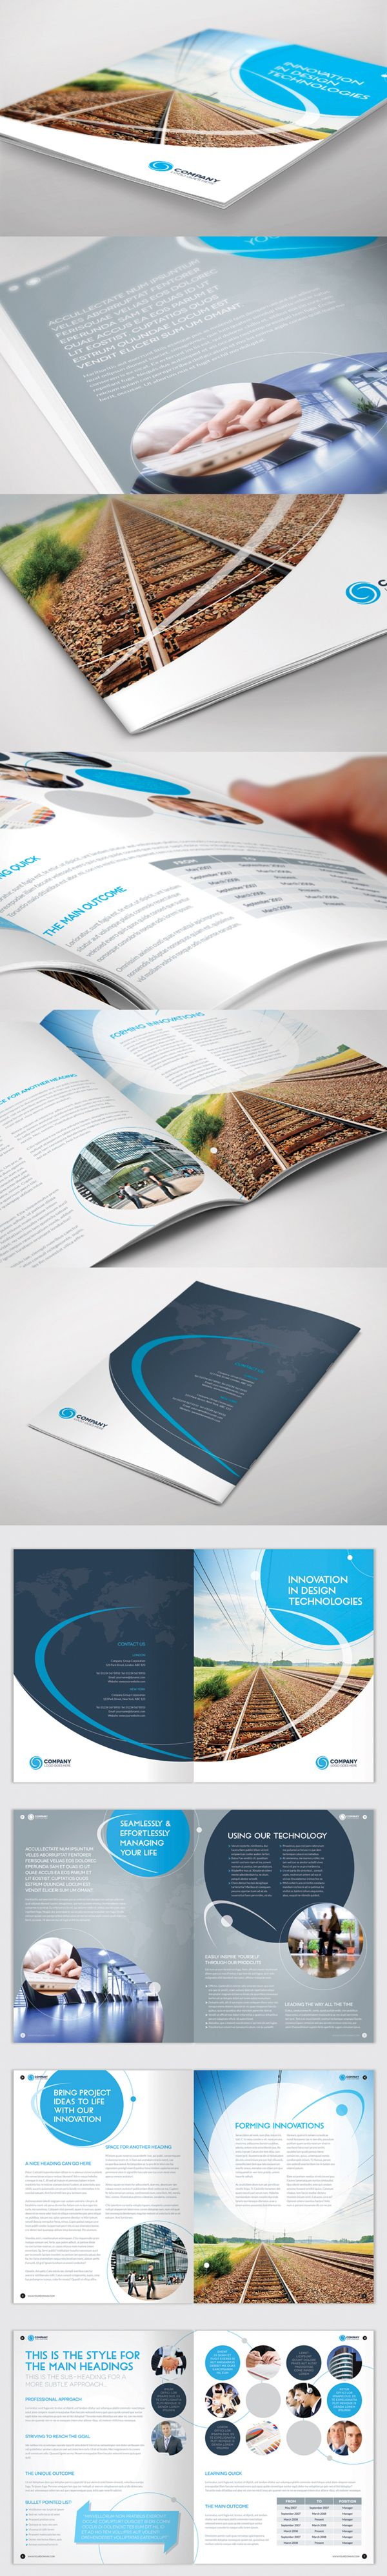 Brochure Template - InDesign 8 Page Layout 01 by BoxedCreative , via Behance